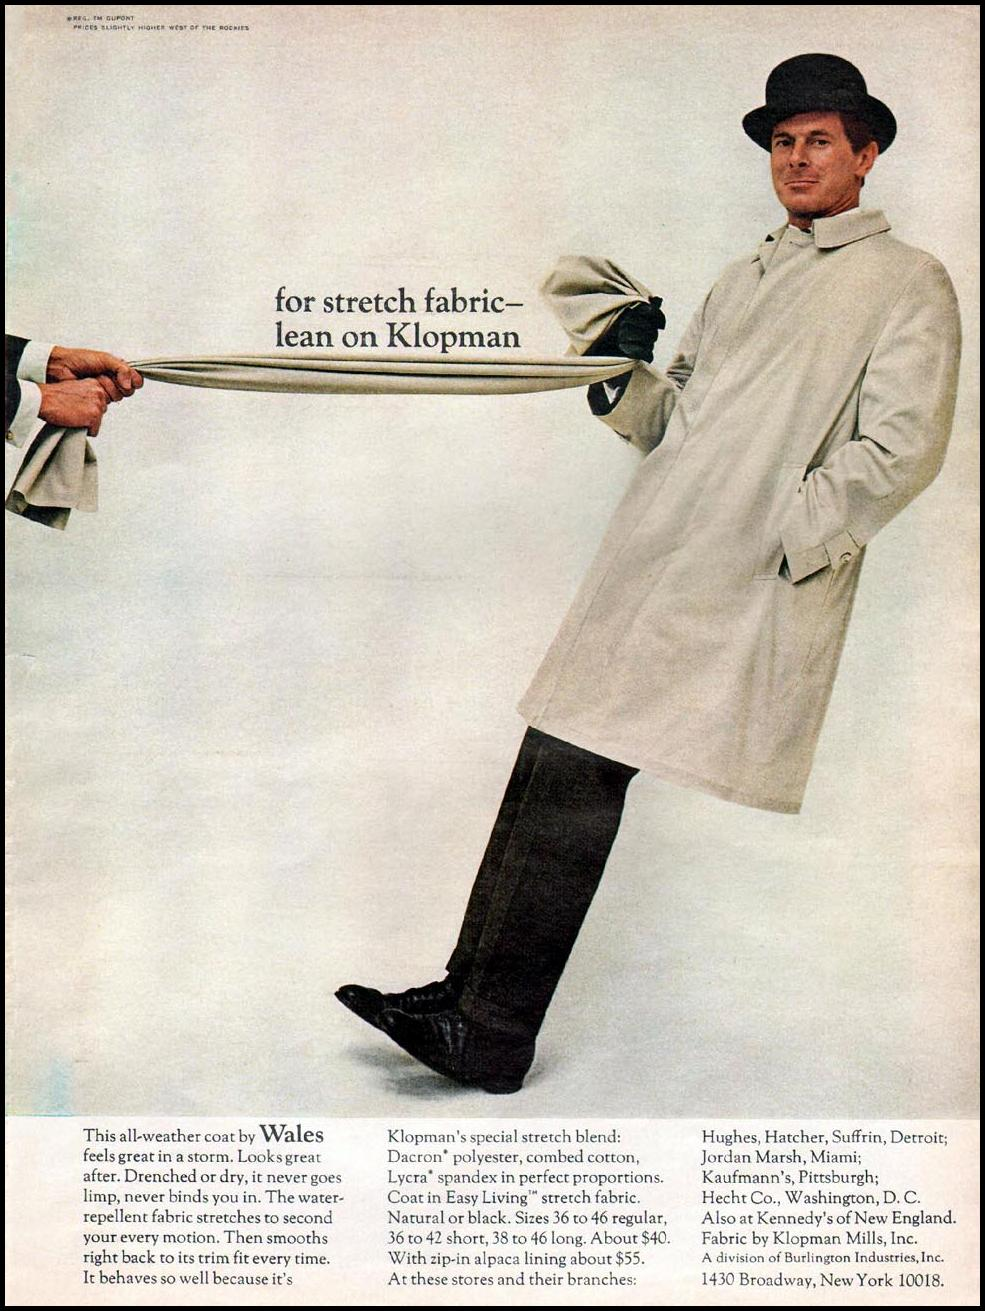 KLOPMAN STRETCH BLEND FABRIC NEWSWEEK 10/12/1964